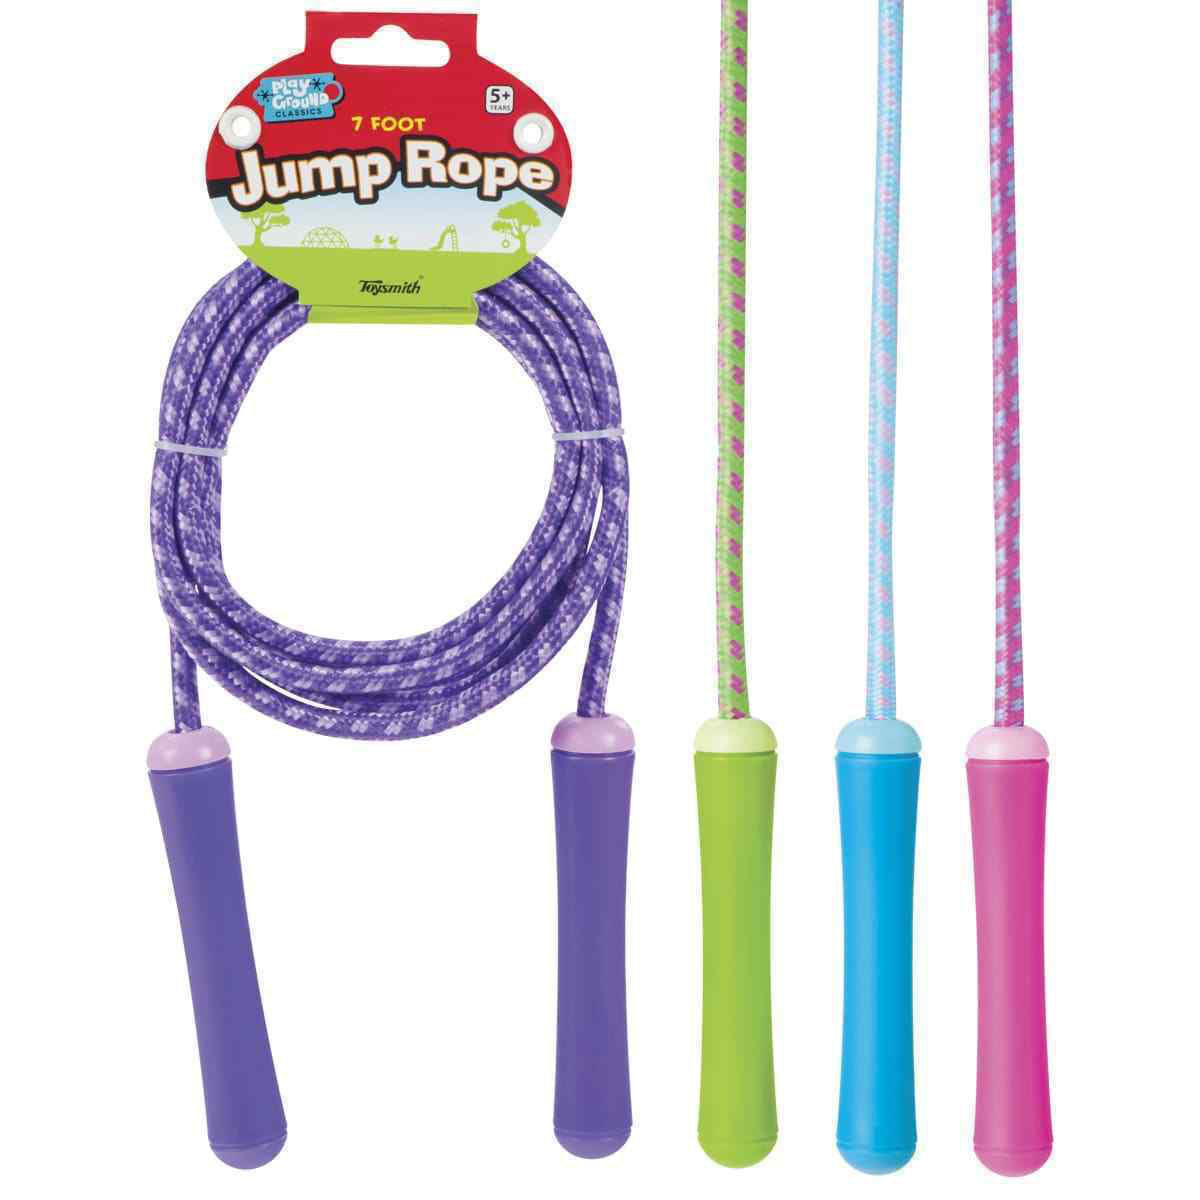 Jump Rope - Classic Outside Active Toy - Tweens and Teens -  Playground Skipping Rope